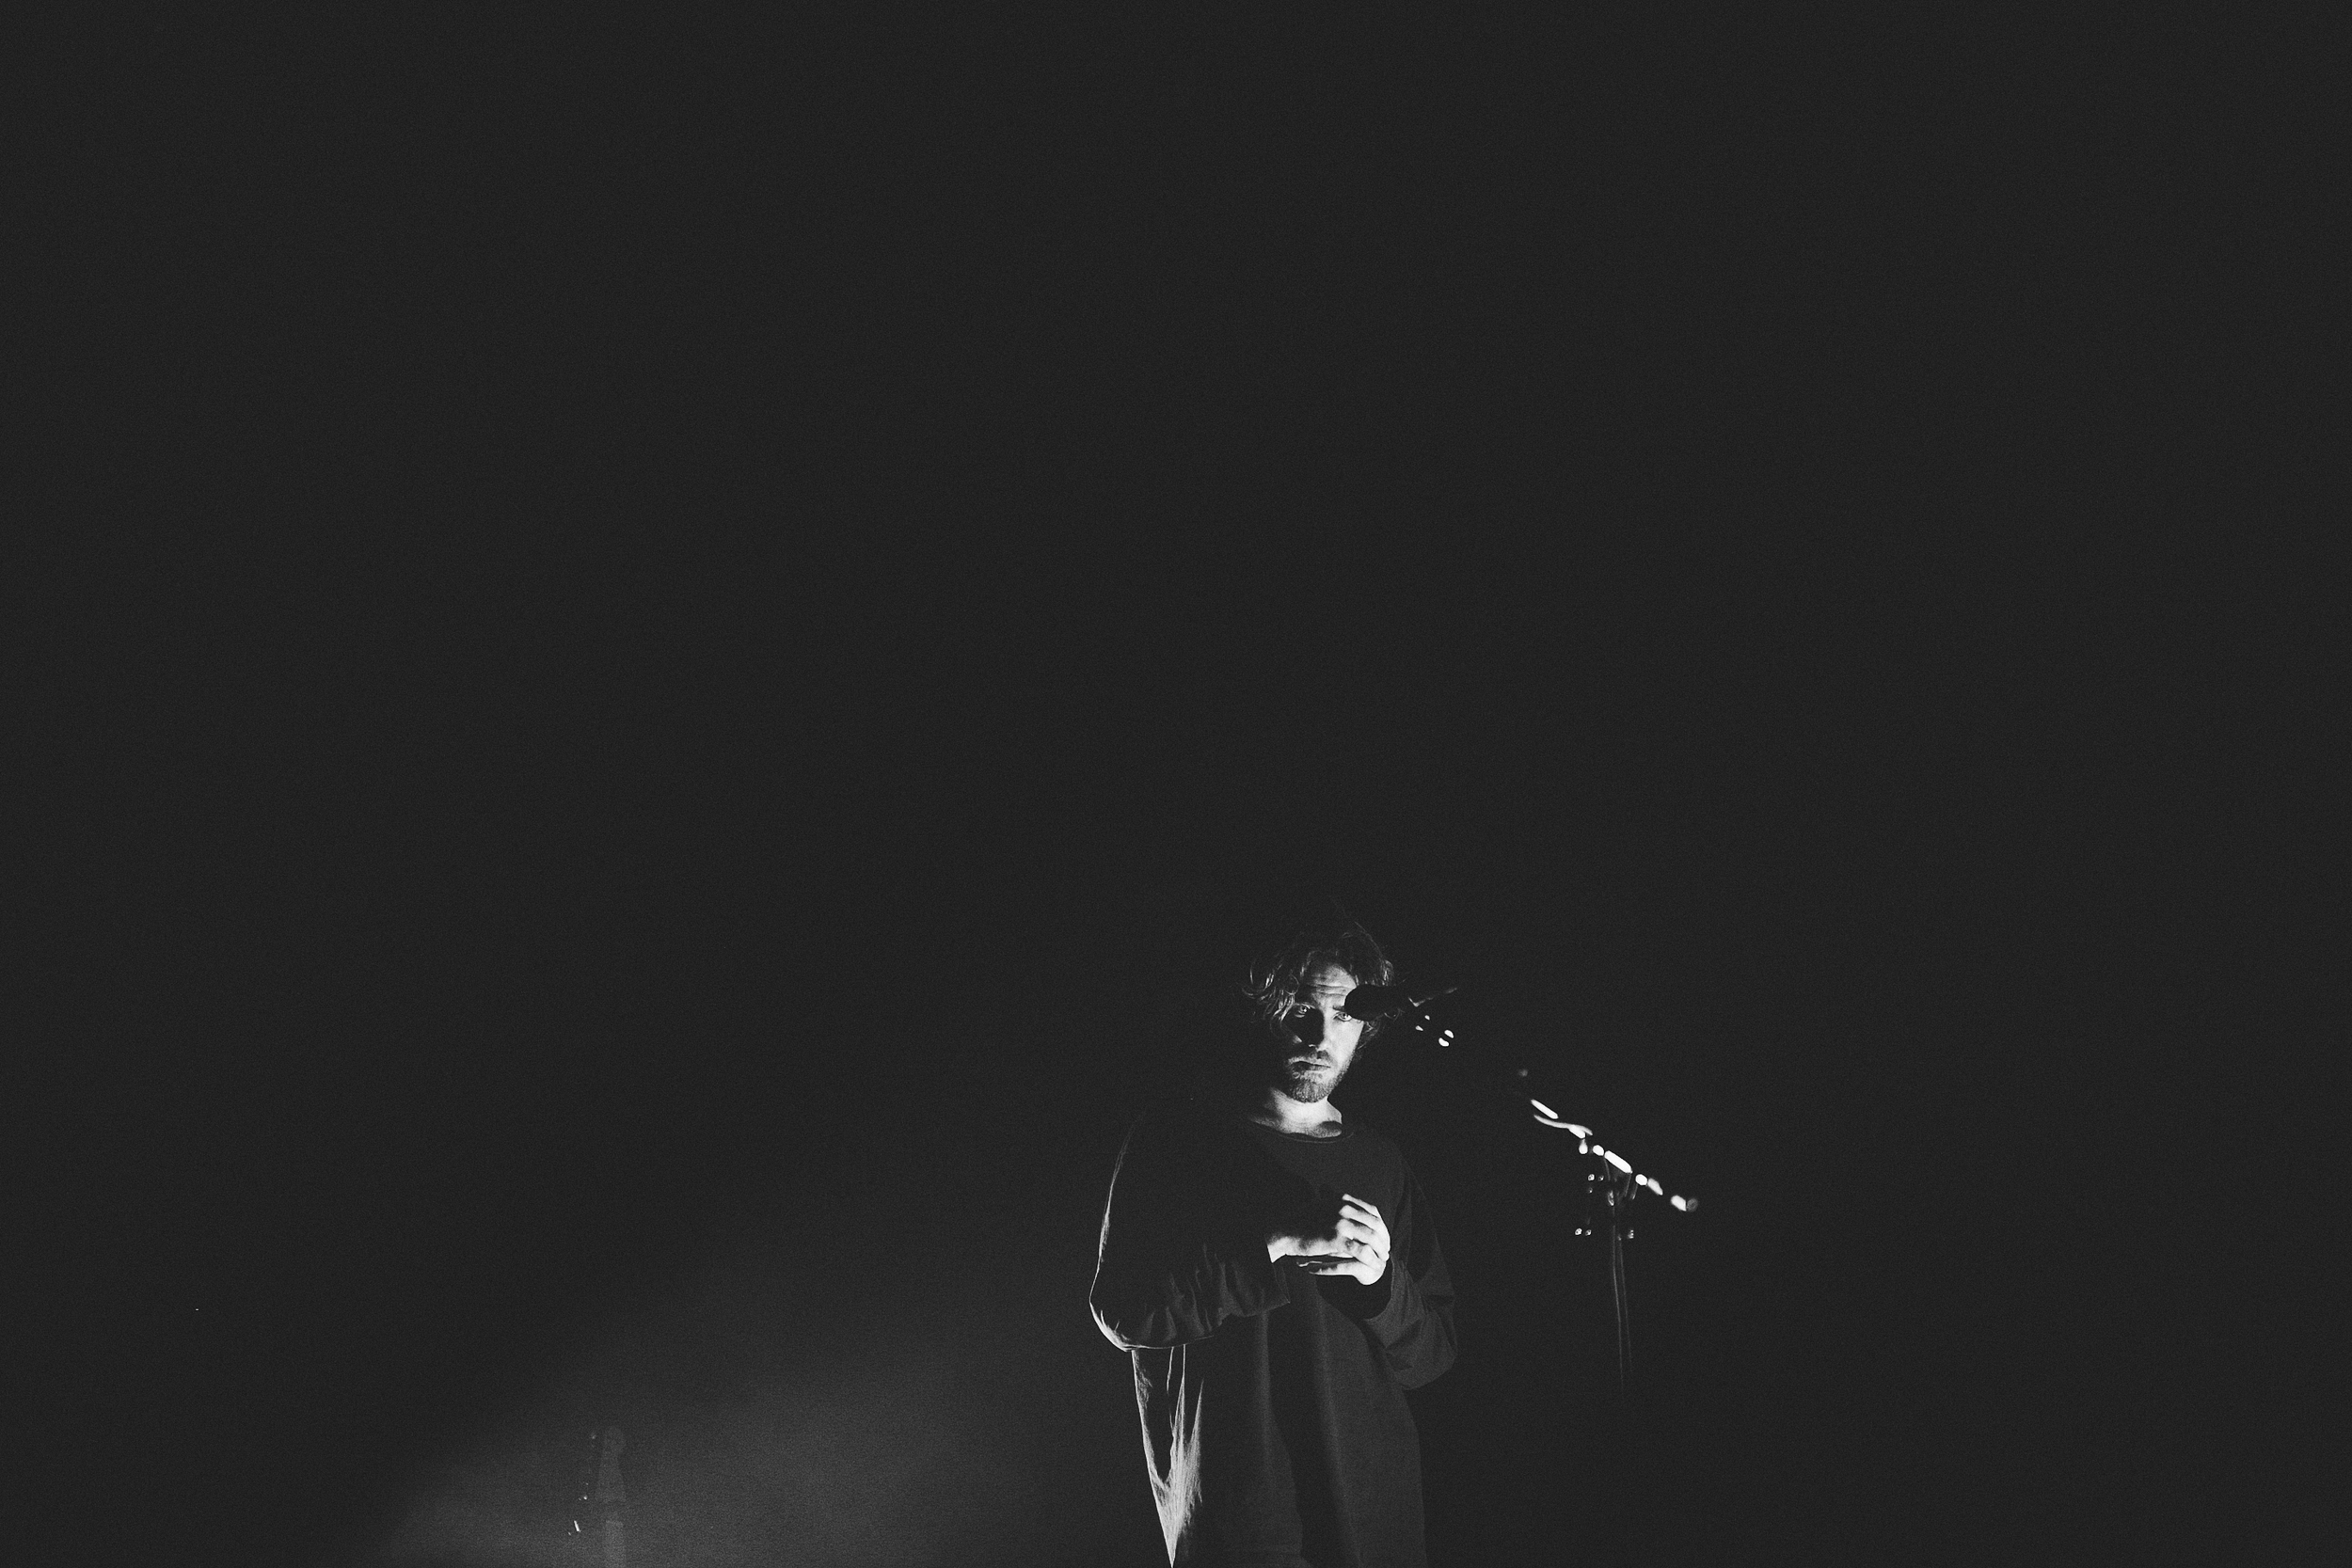 Matt Corby - Live at Thebarton Theatre, Adelaide - Tulleric Tour - Live Photographer - www.katherineschultzphotography.com 4